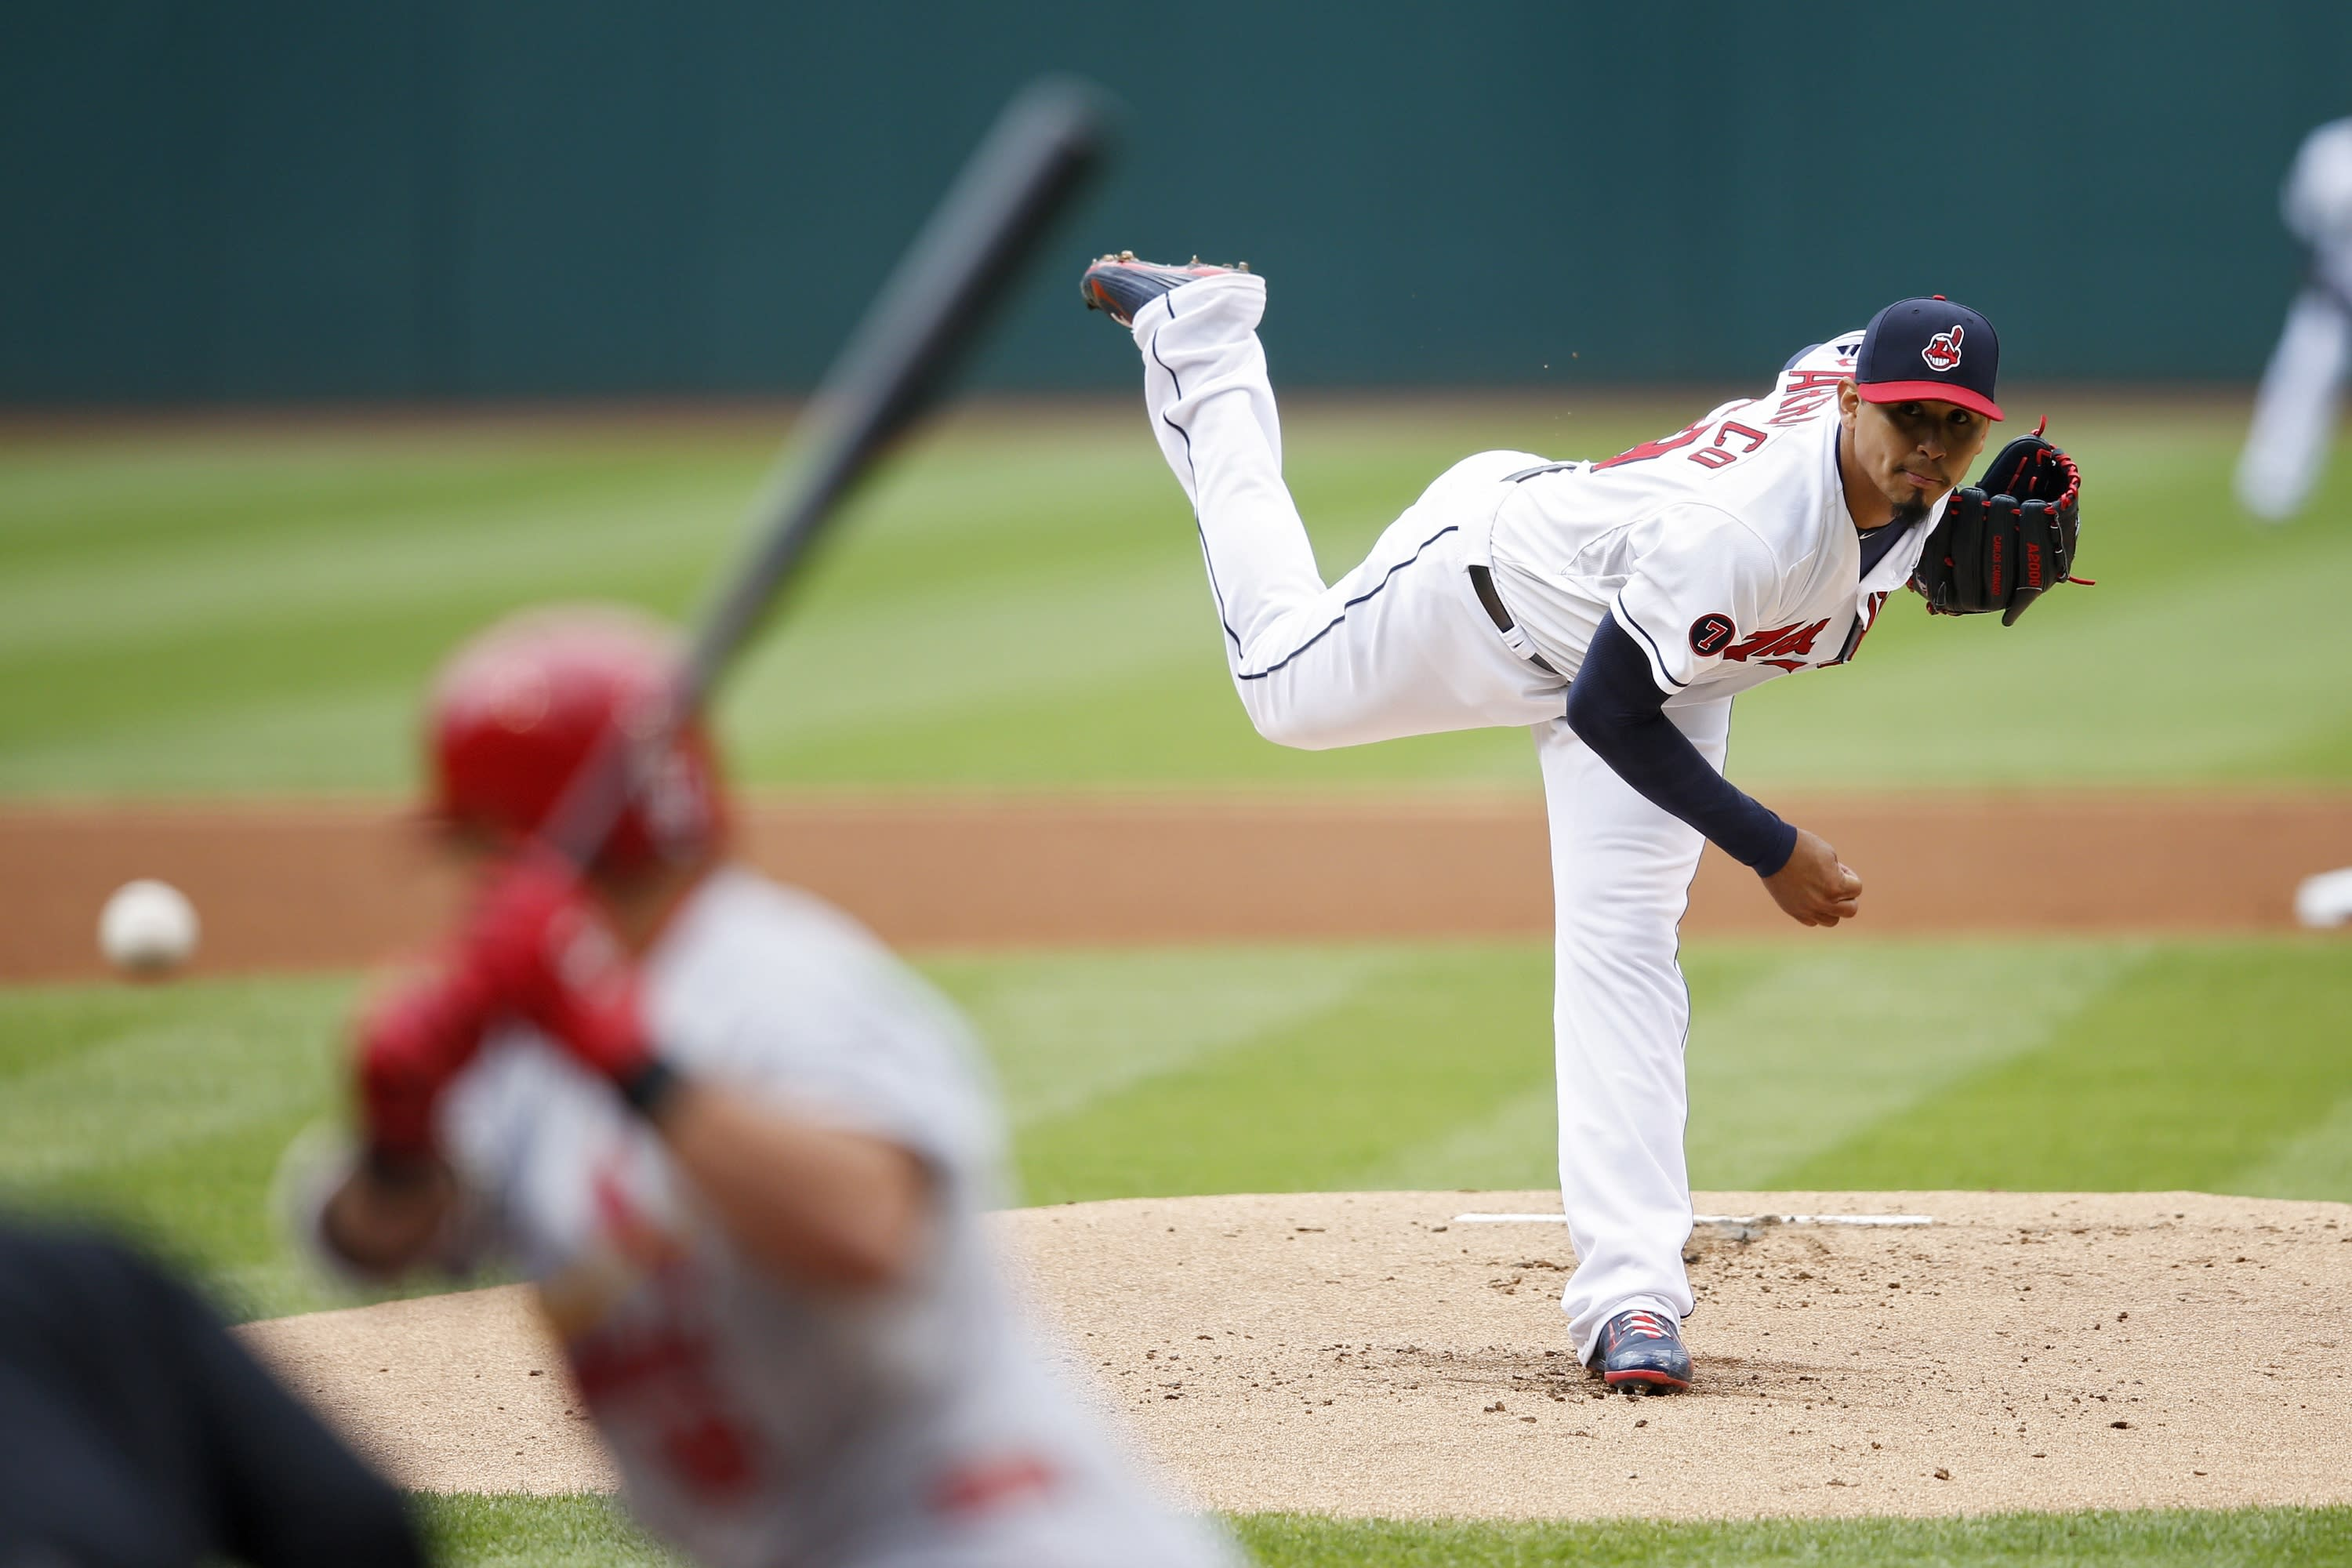 Mostly MLB Notes: Talking Carlos Carrasco, Ryan Braun and a look around the league